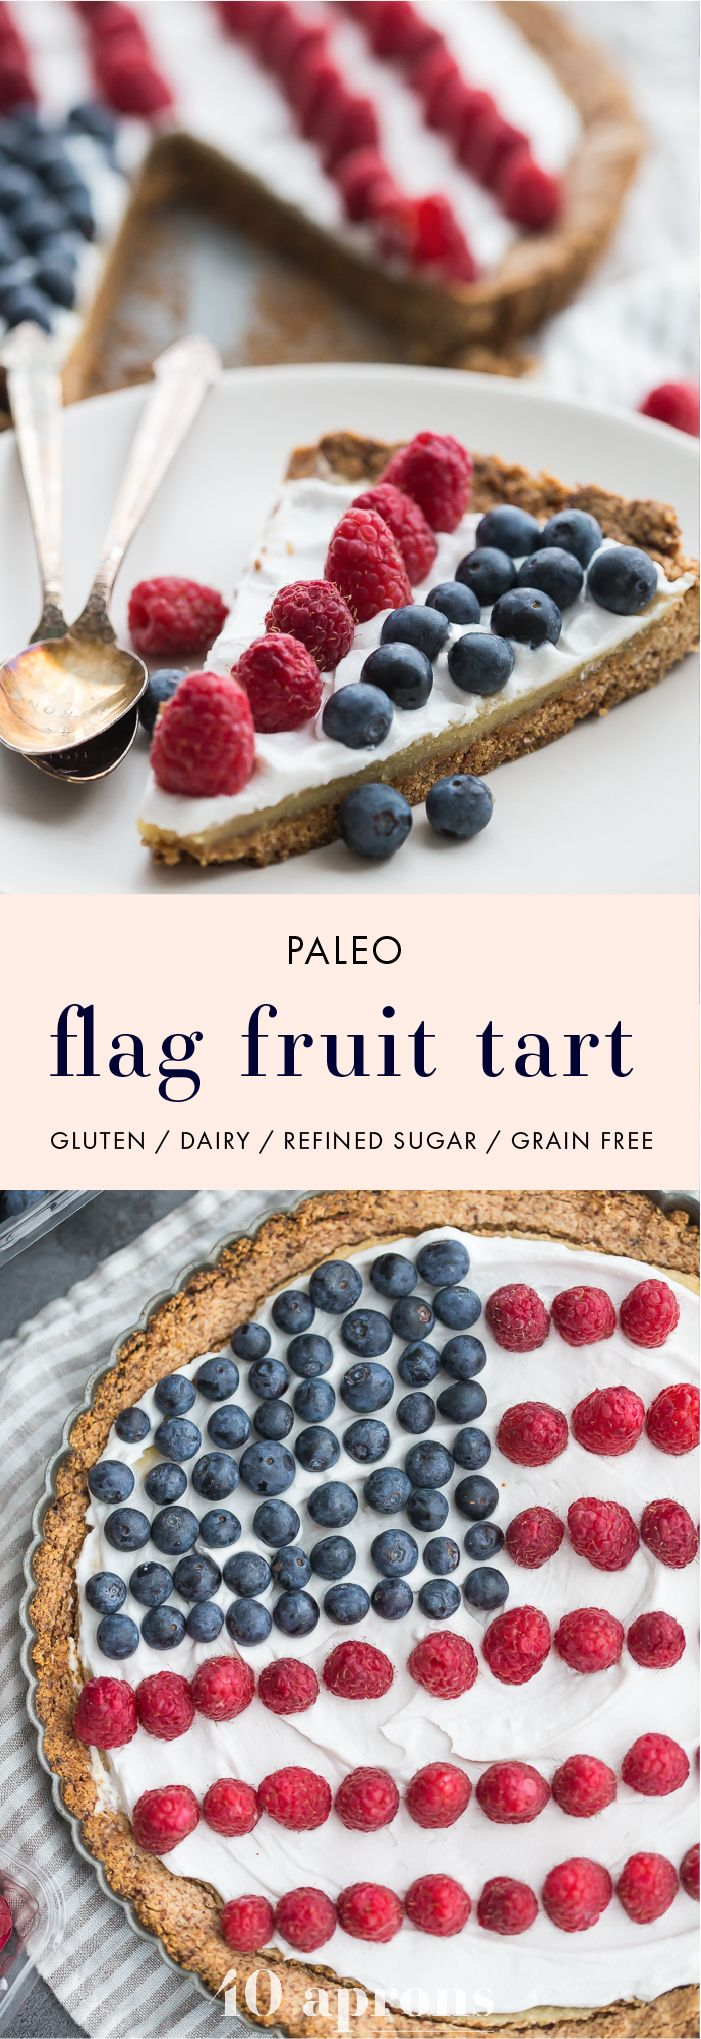 This paleo flag fruit tart is Fourth of July dessert perfection. With a coconut oil shortbread crust, rich almond fangiapane filling, and topped with cool coconut cream and fresh fruit, you've got your paleo Fourth of July dessert covered. Why make a paleo 4th of July cake when you can make a tart delicious enough to beat all other paleo 4th of July desserts?! U-S-A! U-S-A! #CreateWithOil #Ad